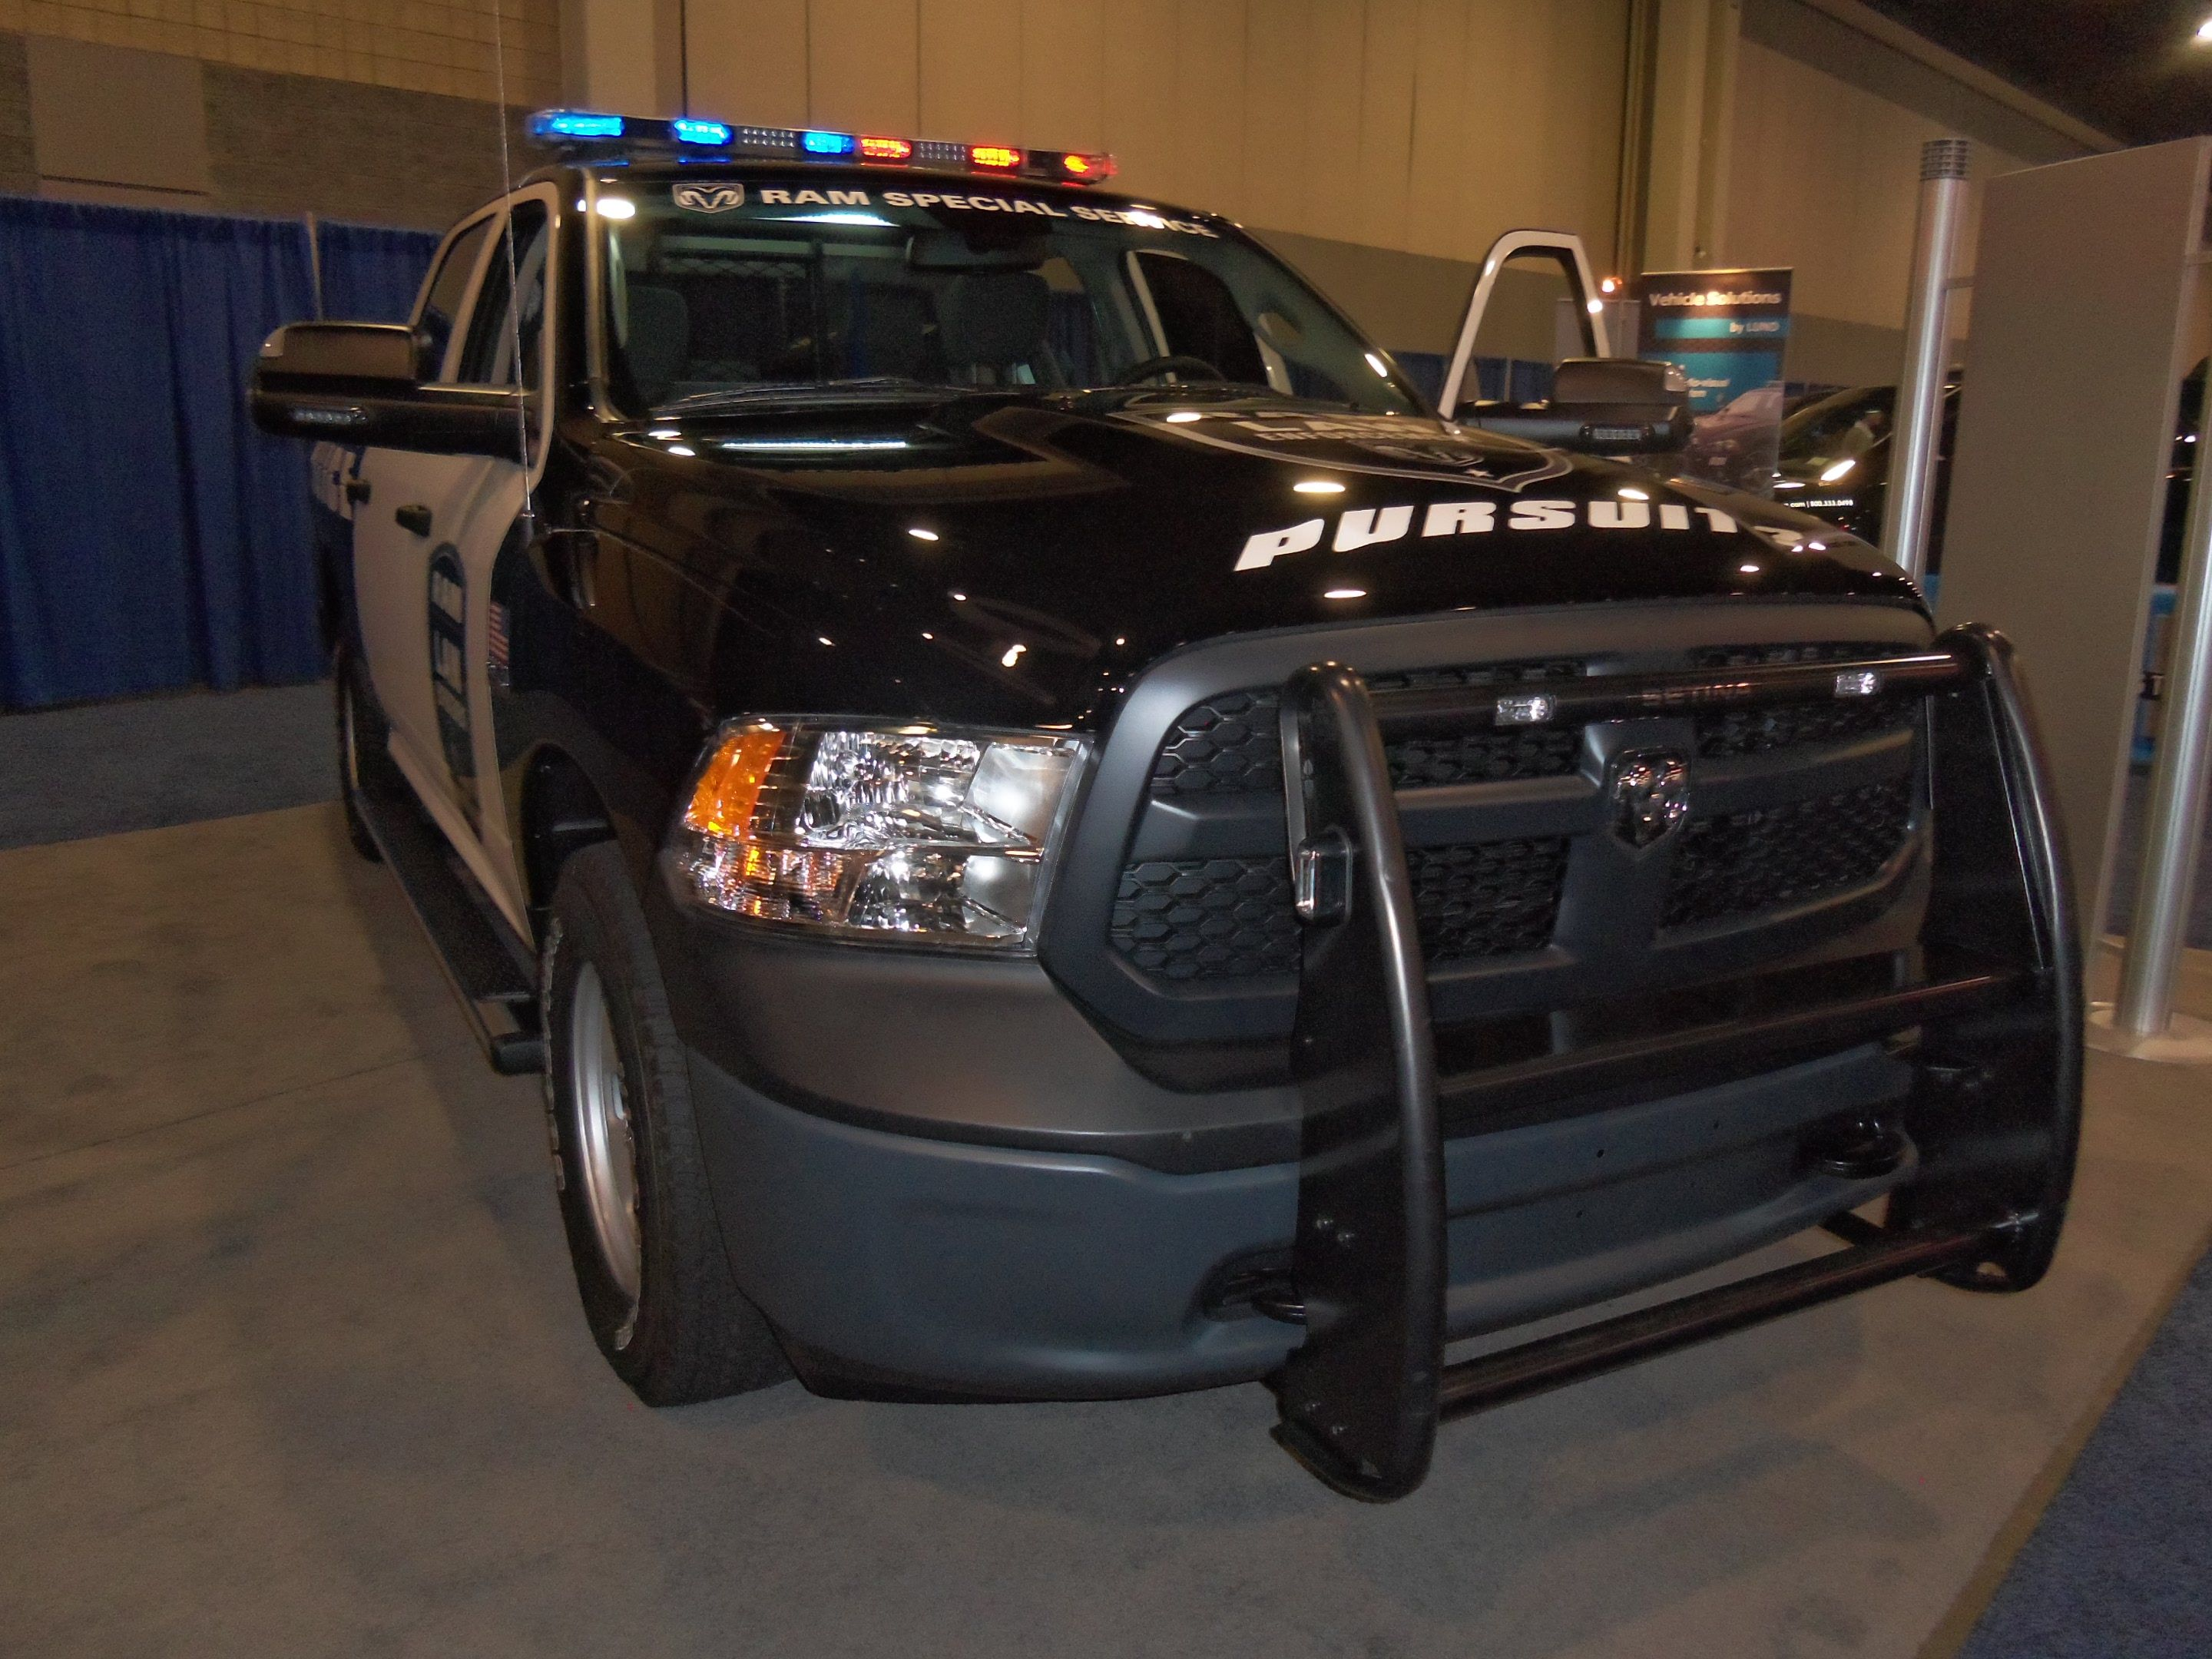 The dodge ram 1500 special service vehicle displayed in chrysler s booth at 2013 police fleet expo